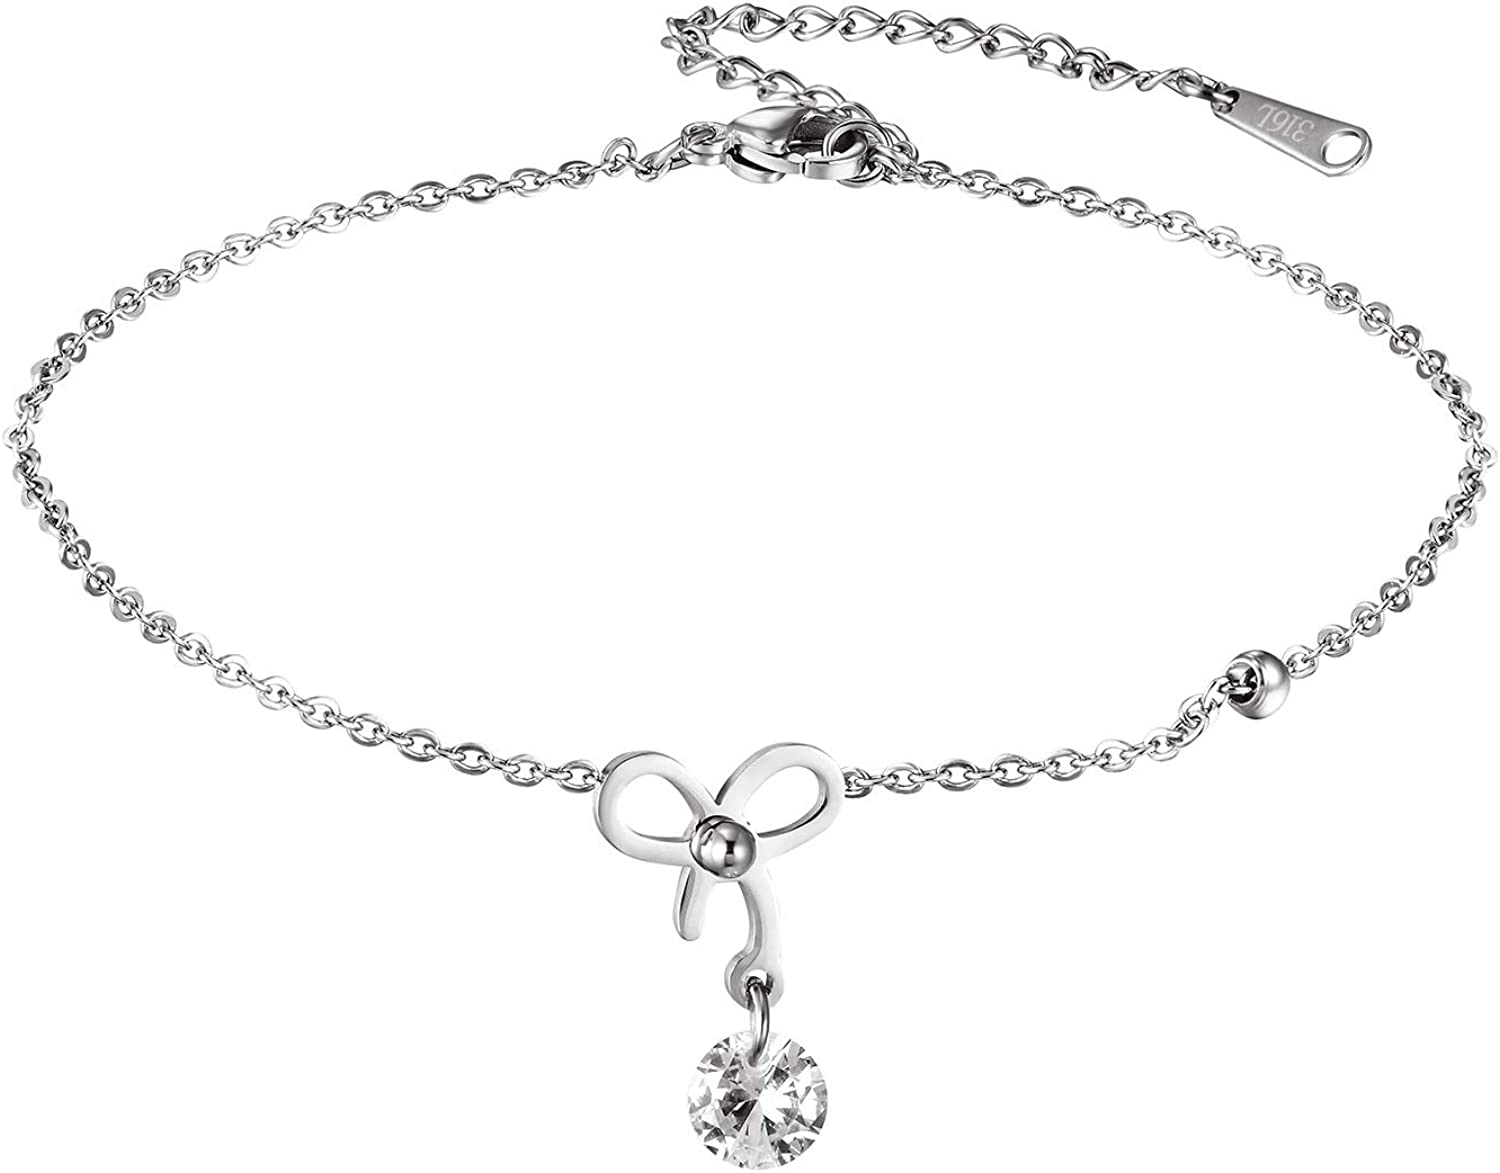 Hobbyant Simple Personality Bow Hanging Drill Anklet for Women